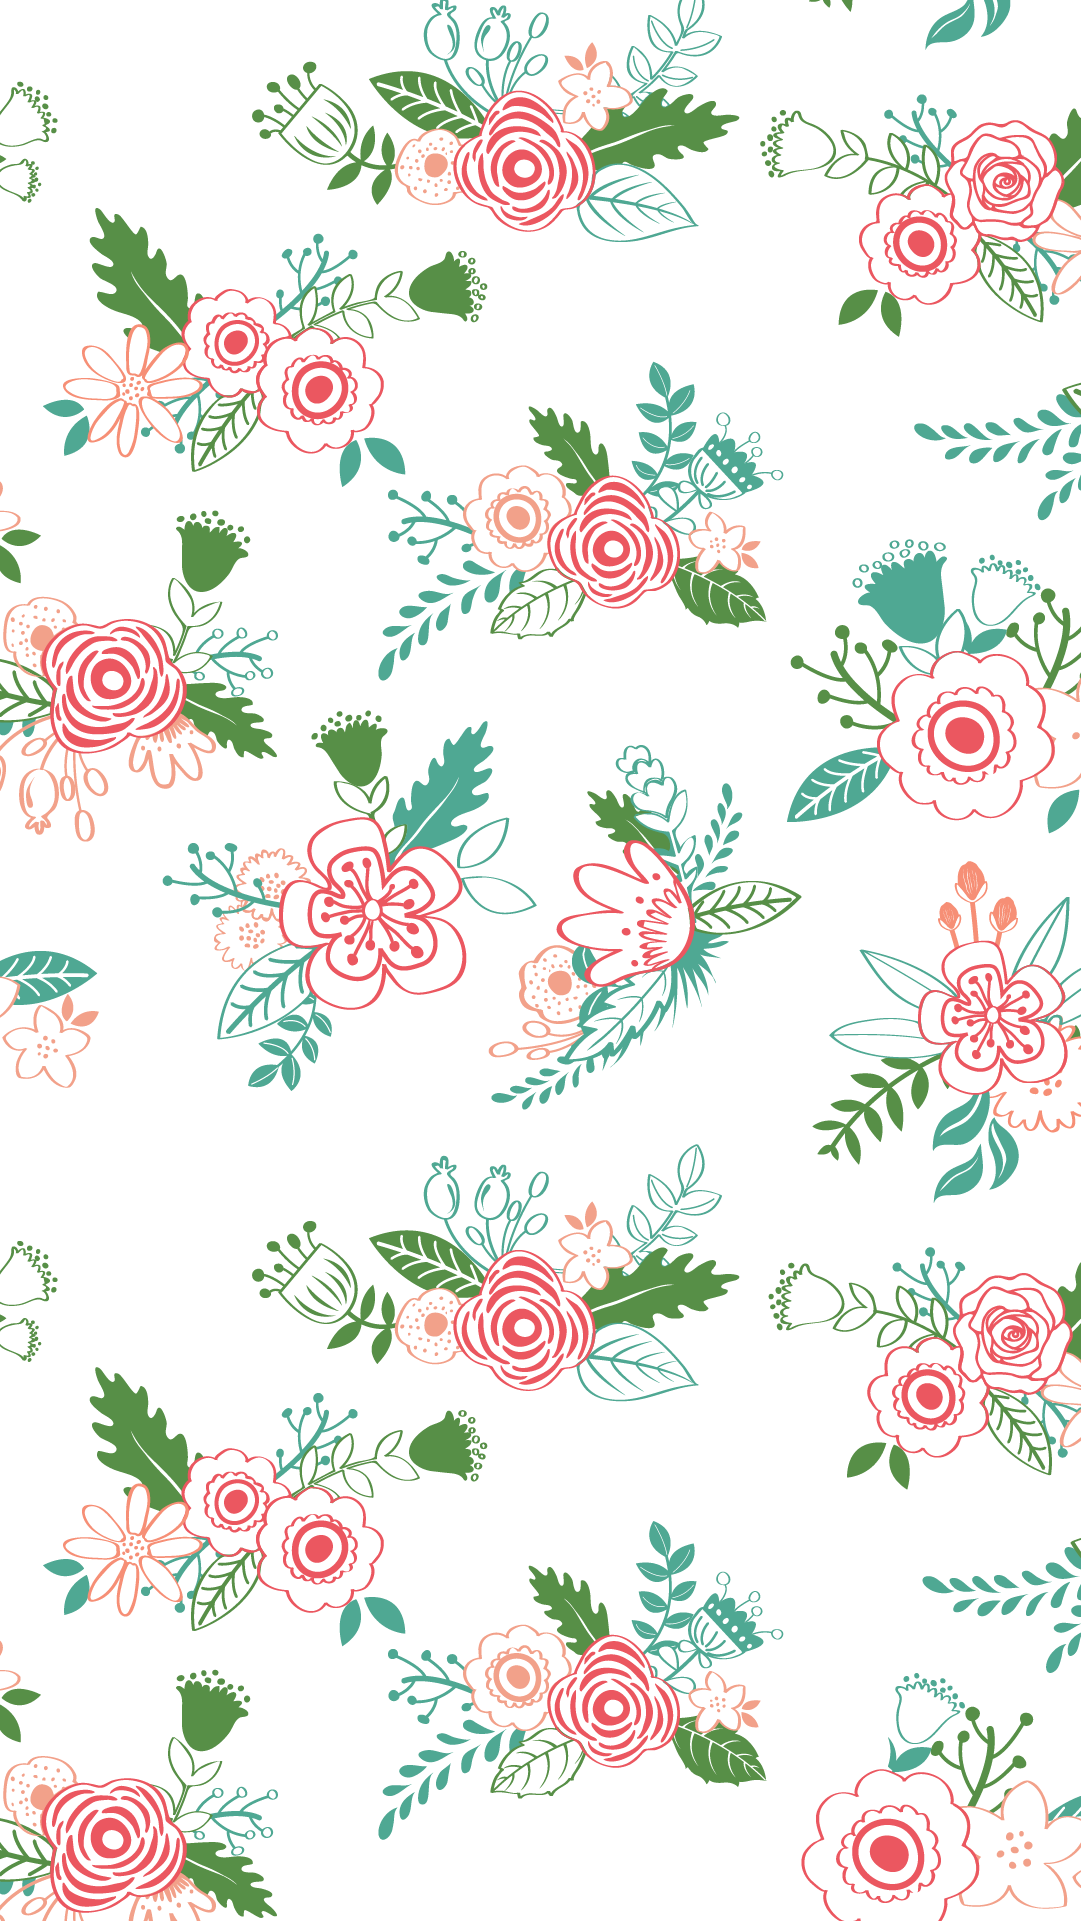 White mint green pink illustrated floral flowers iphone wallpaper phone background lock screen